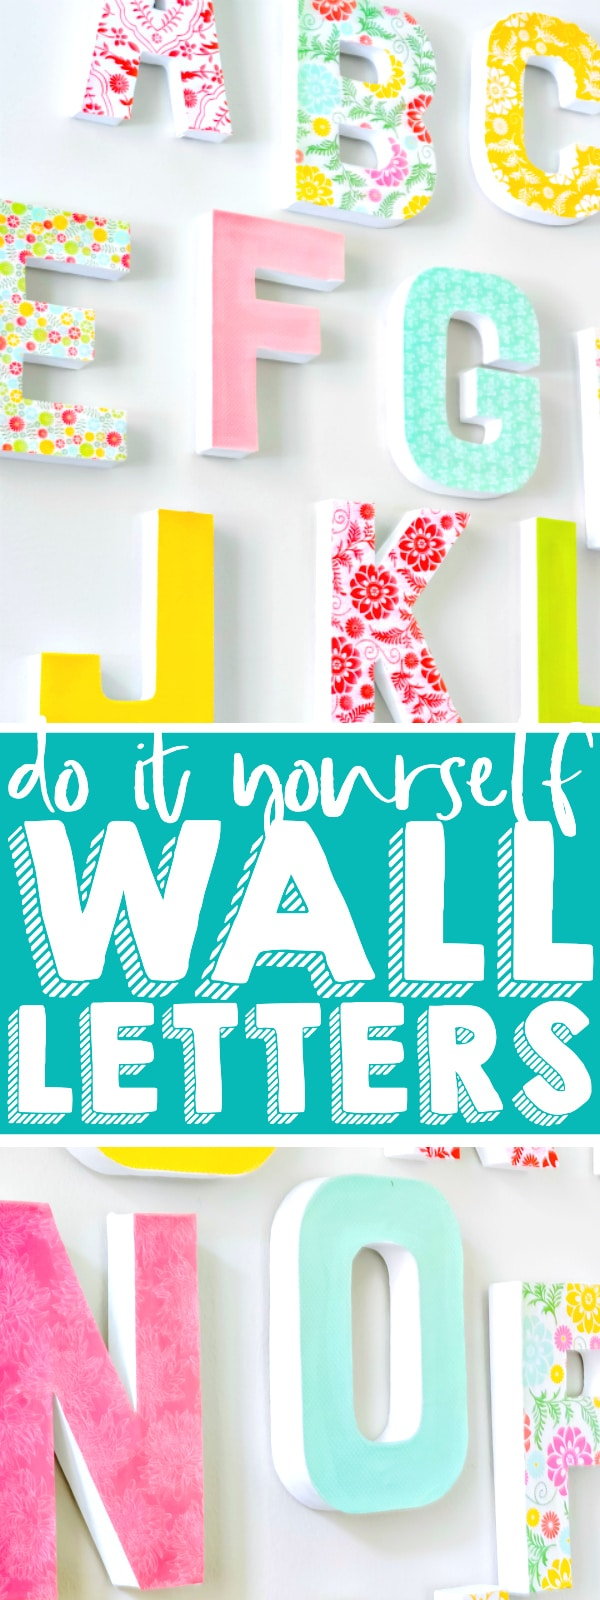 This letter wall decor makes a stunning statement piece gallery wall without the expense of buying them or the struggle of finding letters to match your home decor! These DIY wall letters make the perfect addition to your nursery, home office, classroom or playroom! | THE LOVE NERDS #diyhomedecor #wallprojects #nurseryart #playroomdecor